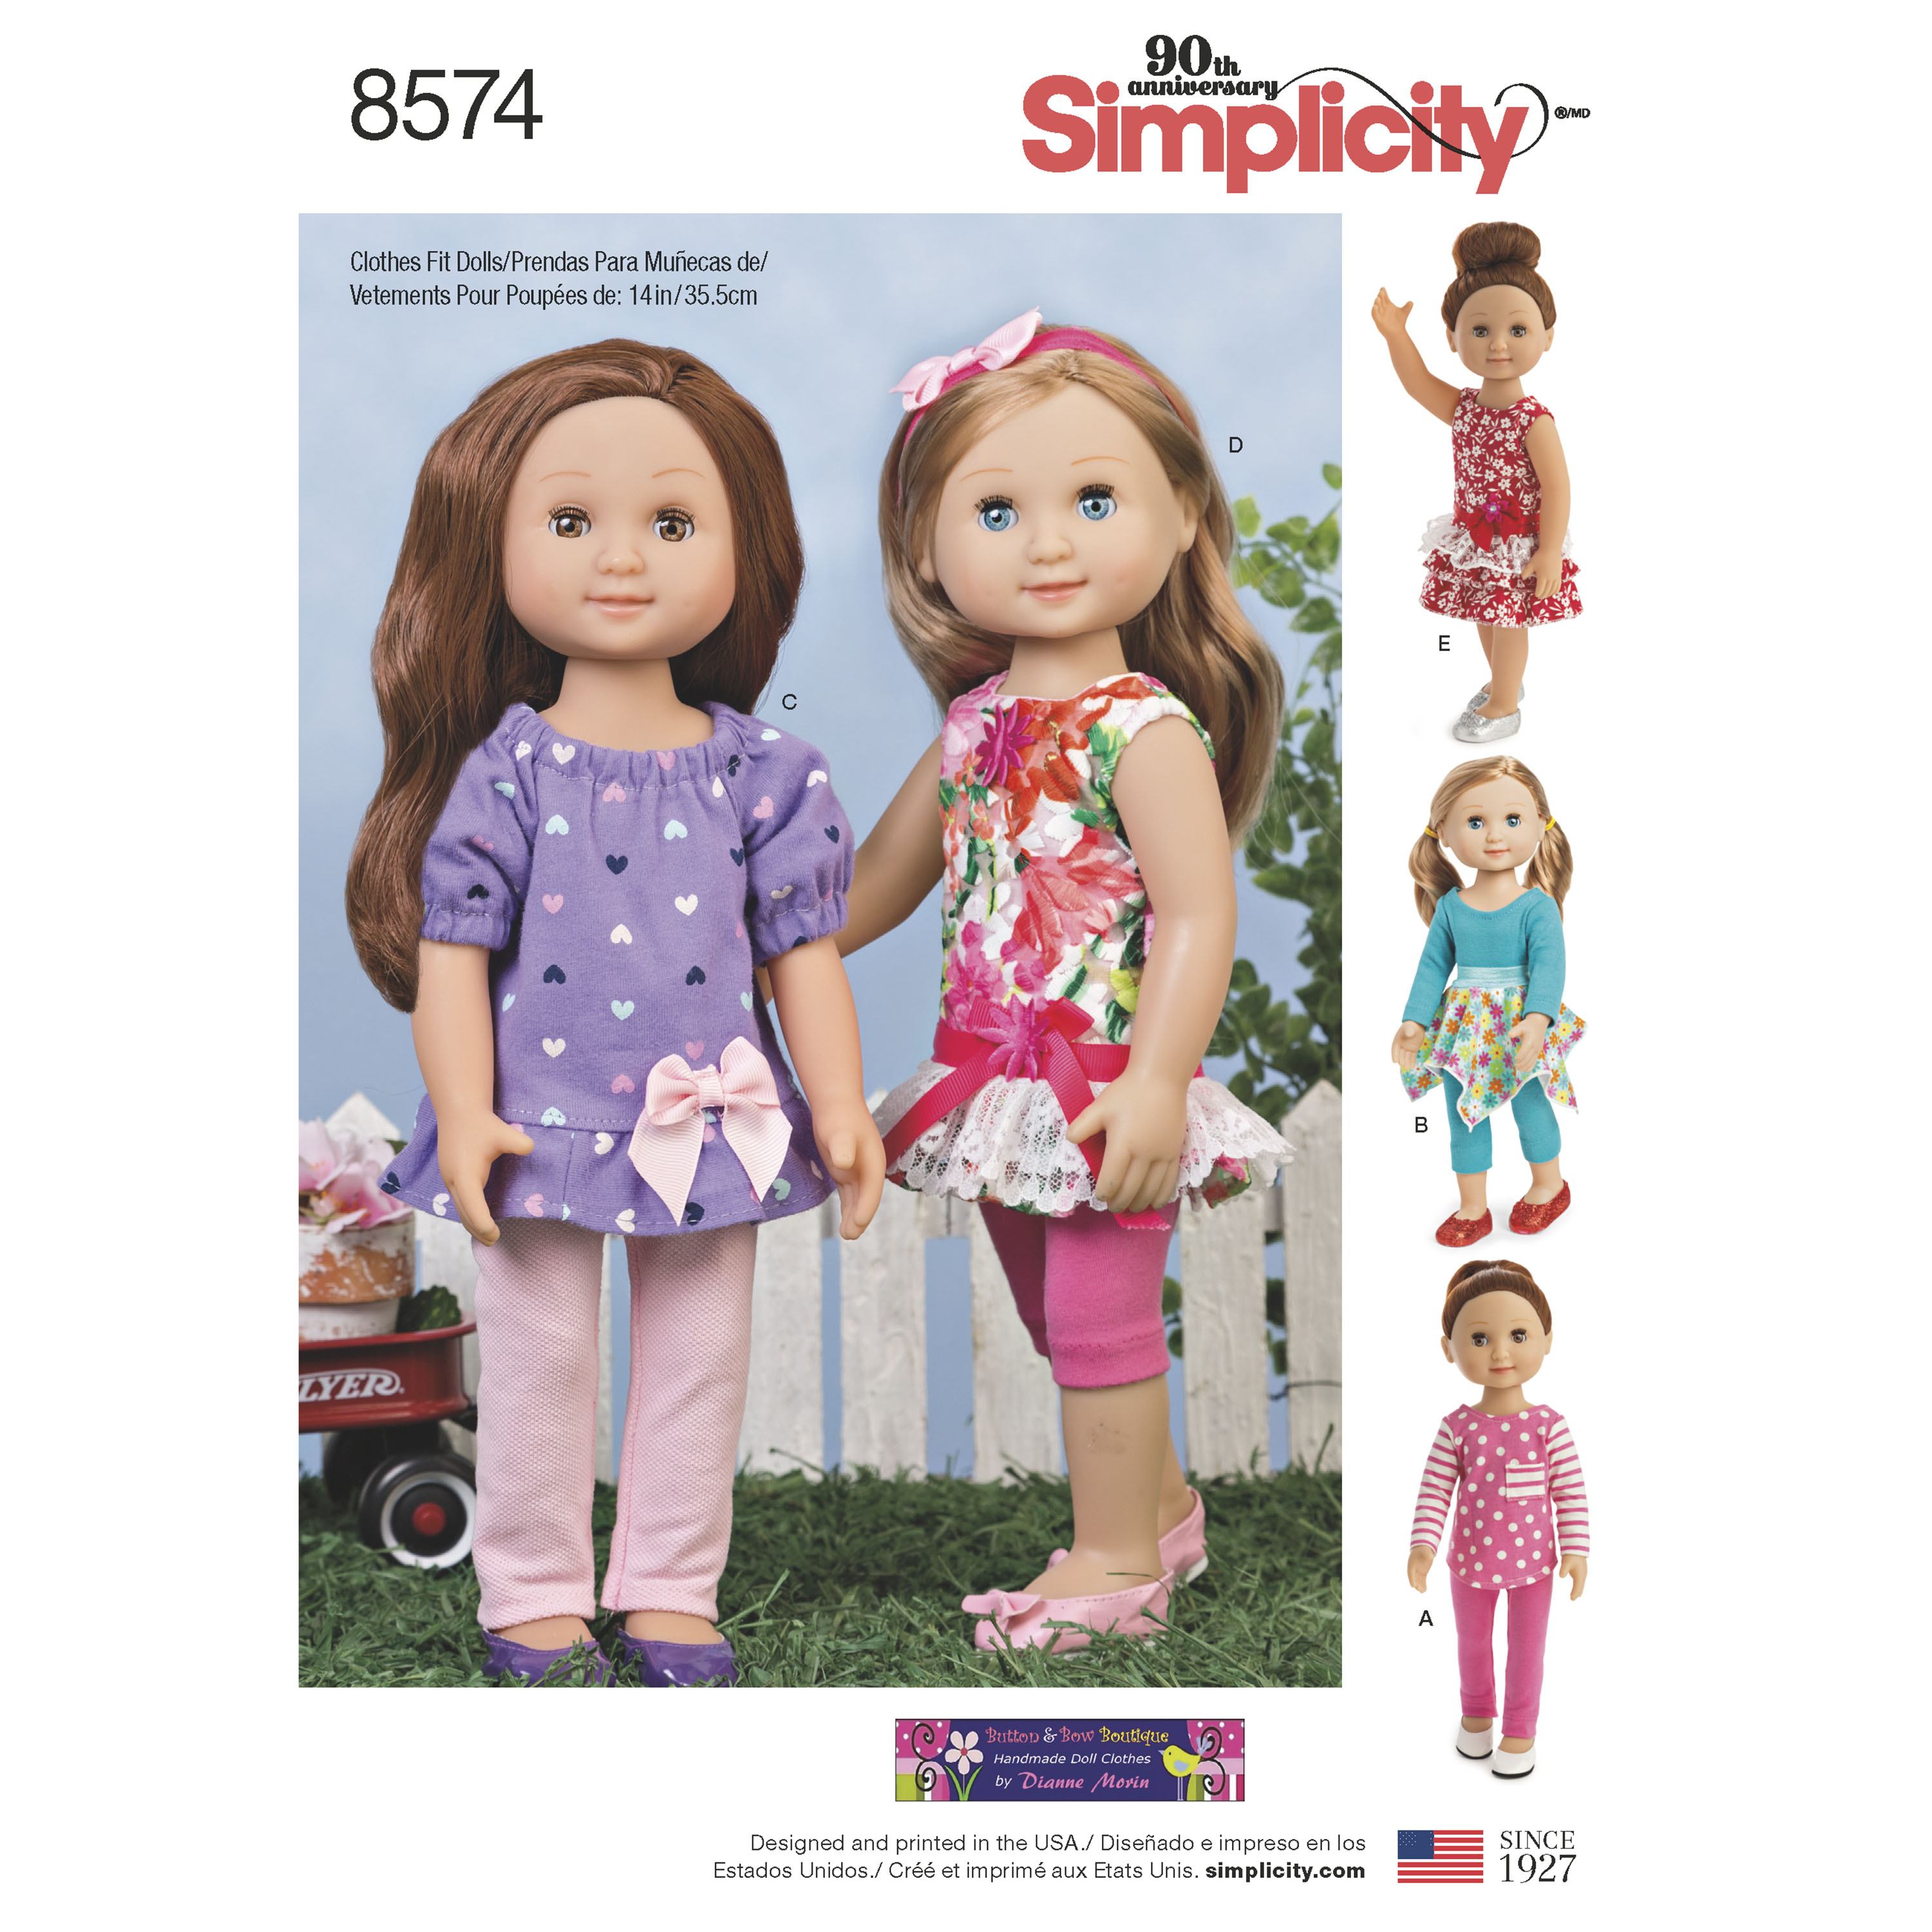 Simplicity simplicity pattern 8574 14 doll clothes prevnext jeuxipadfo Image collections